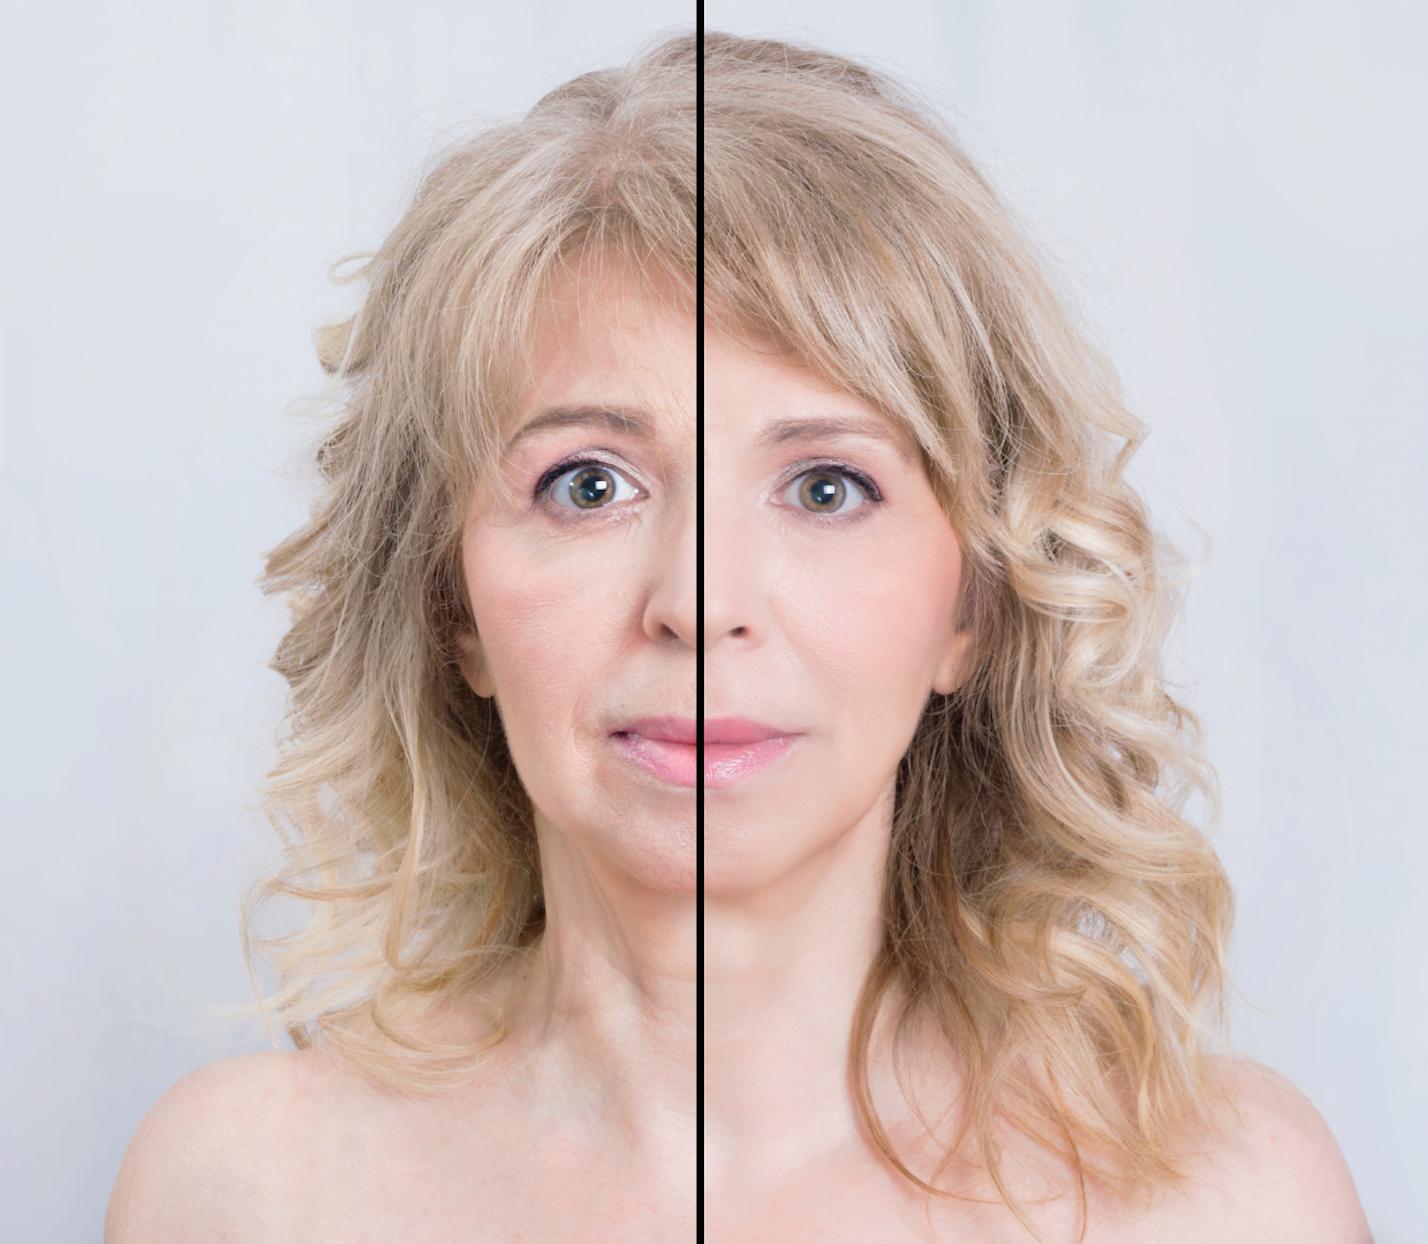 Are microneedling and microdermabrasion the same?